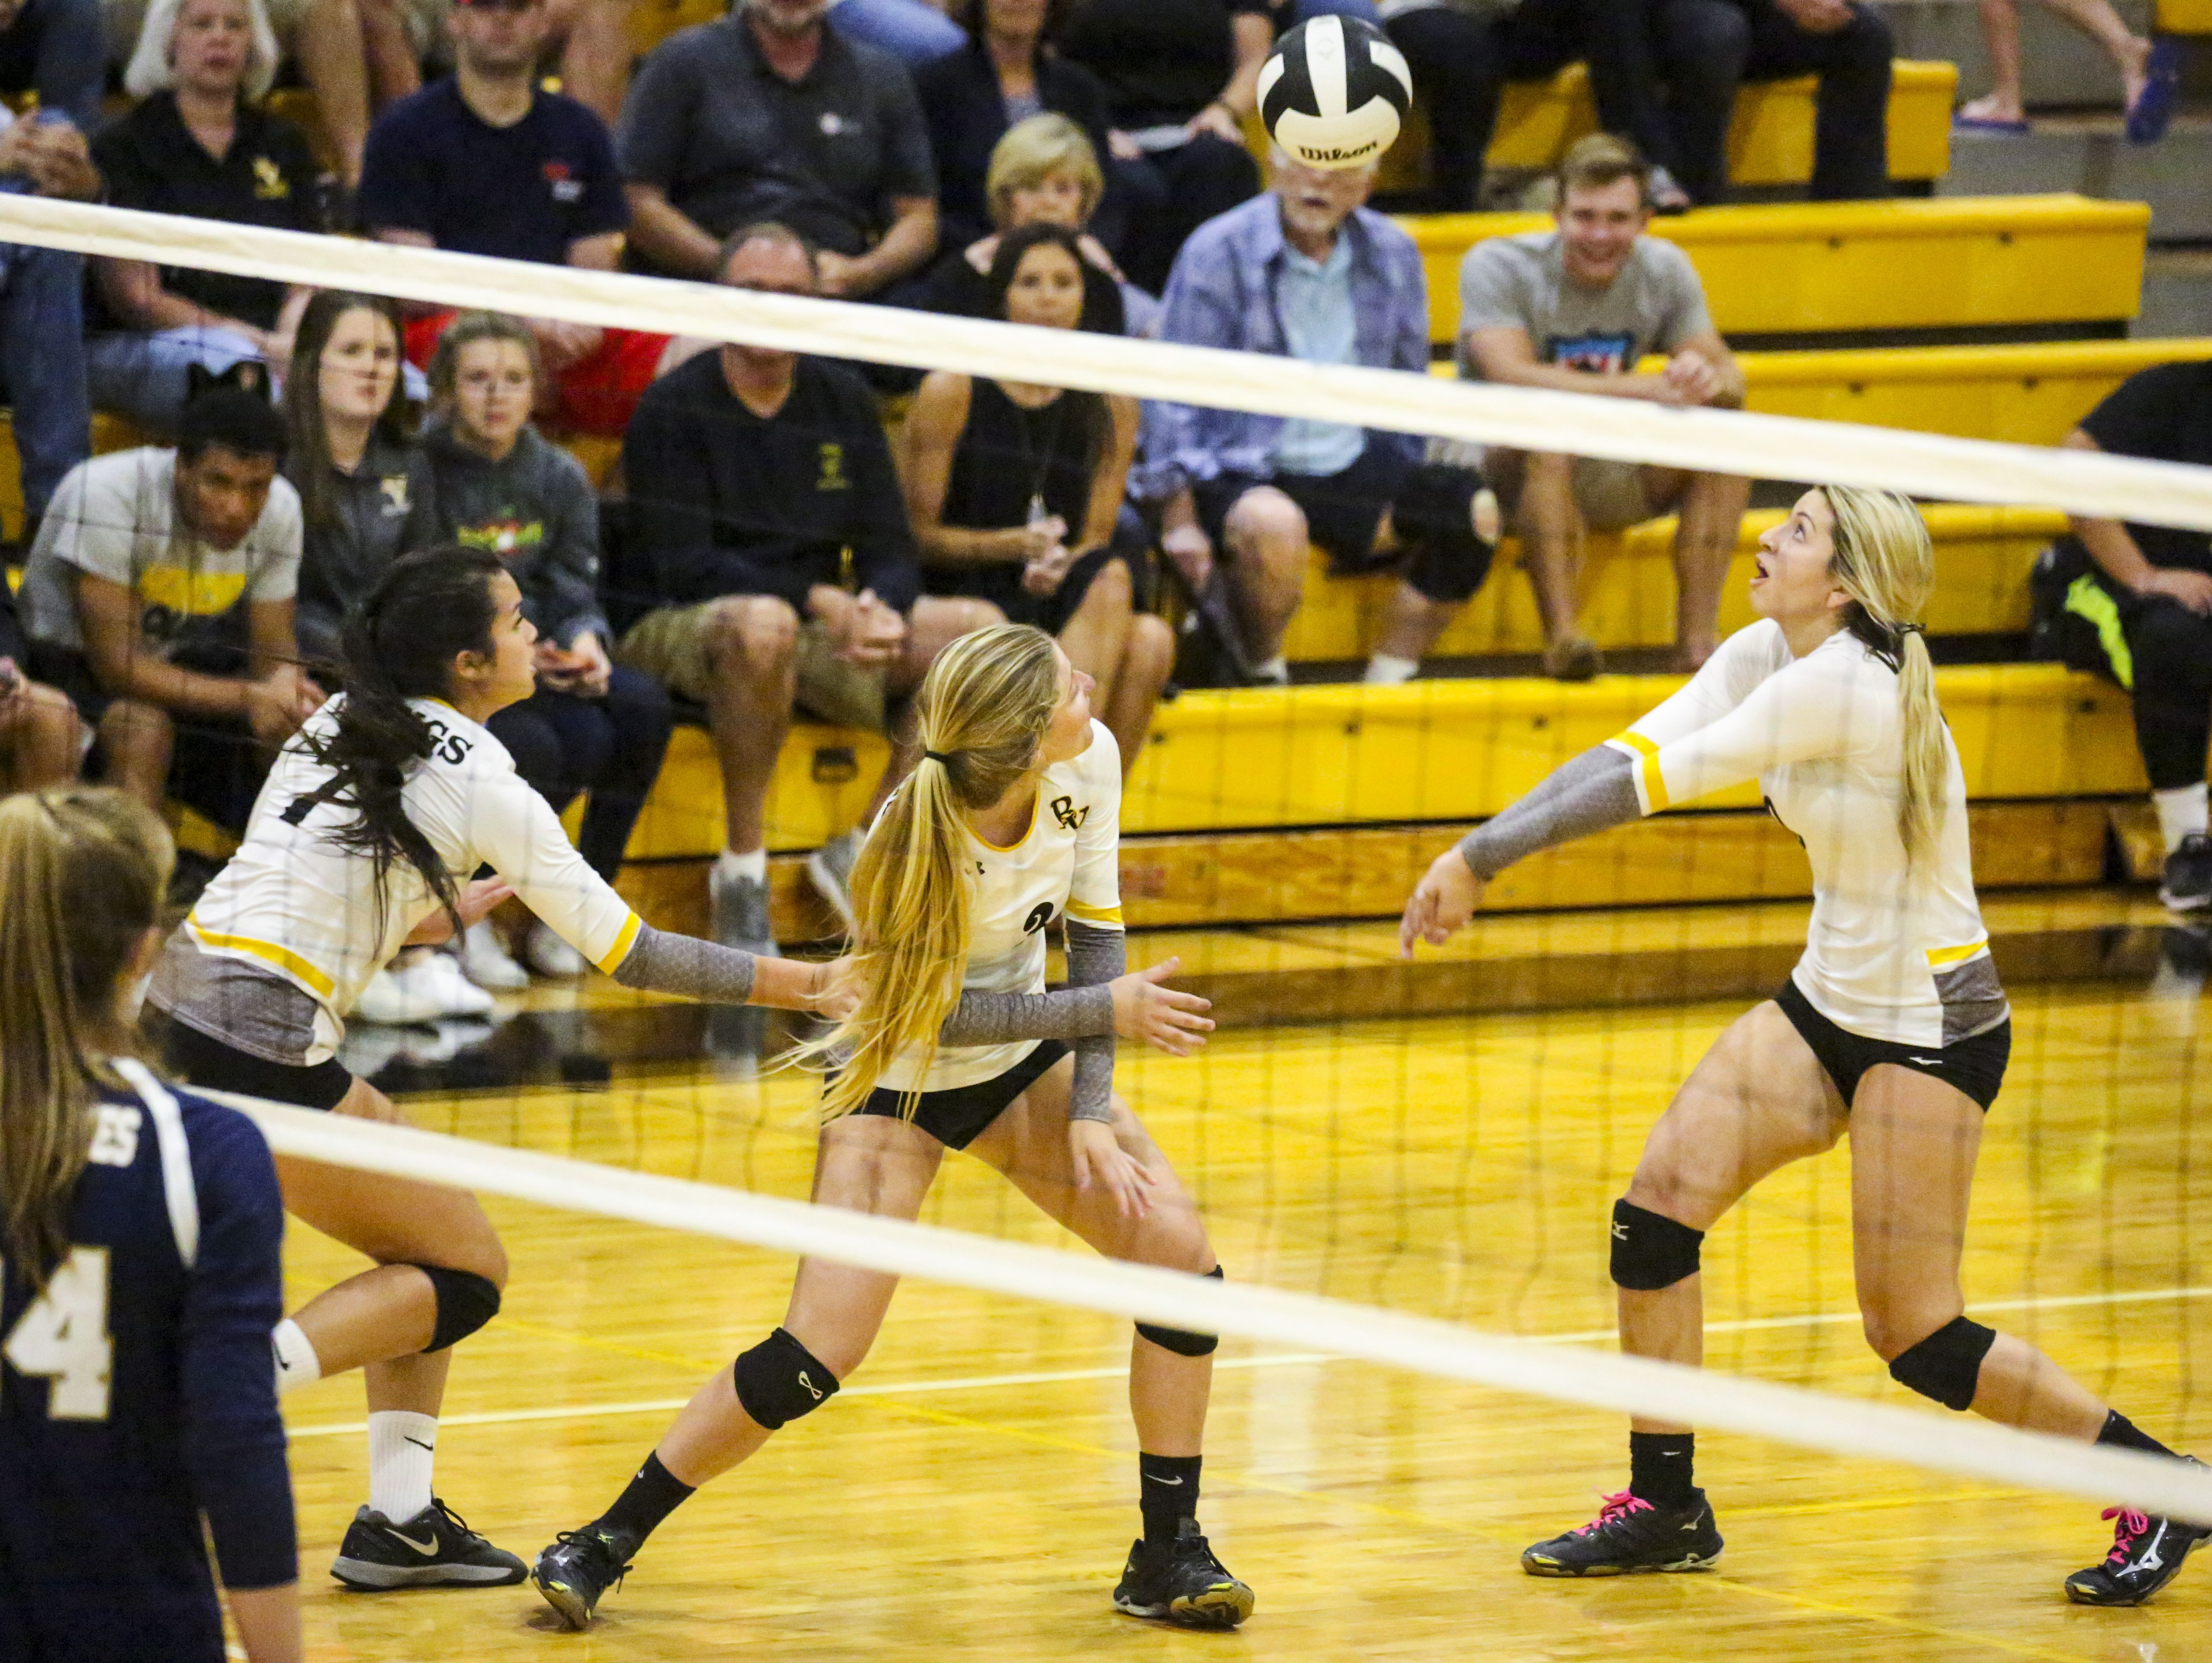 Tampa Academy of Holy Names played Bishop Verot in their Region 5A-3 volleyball quarterfinal.